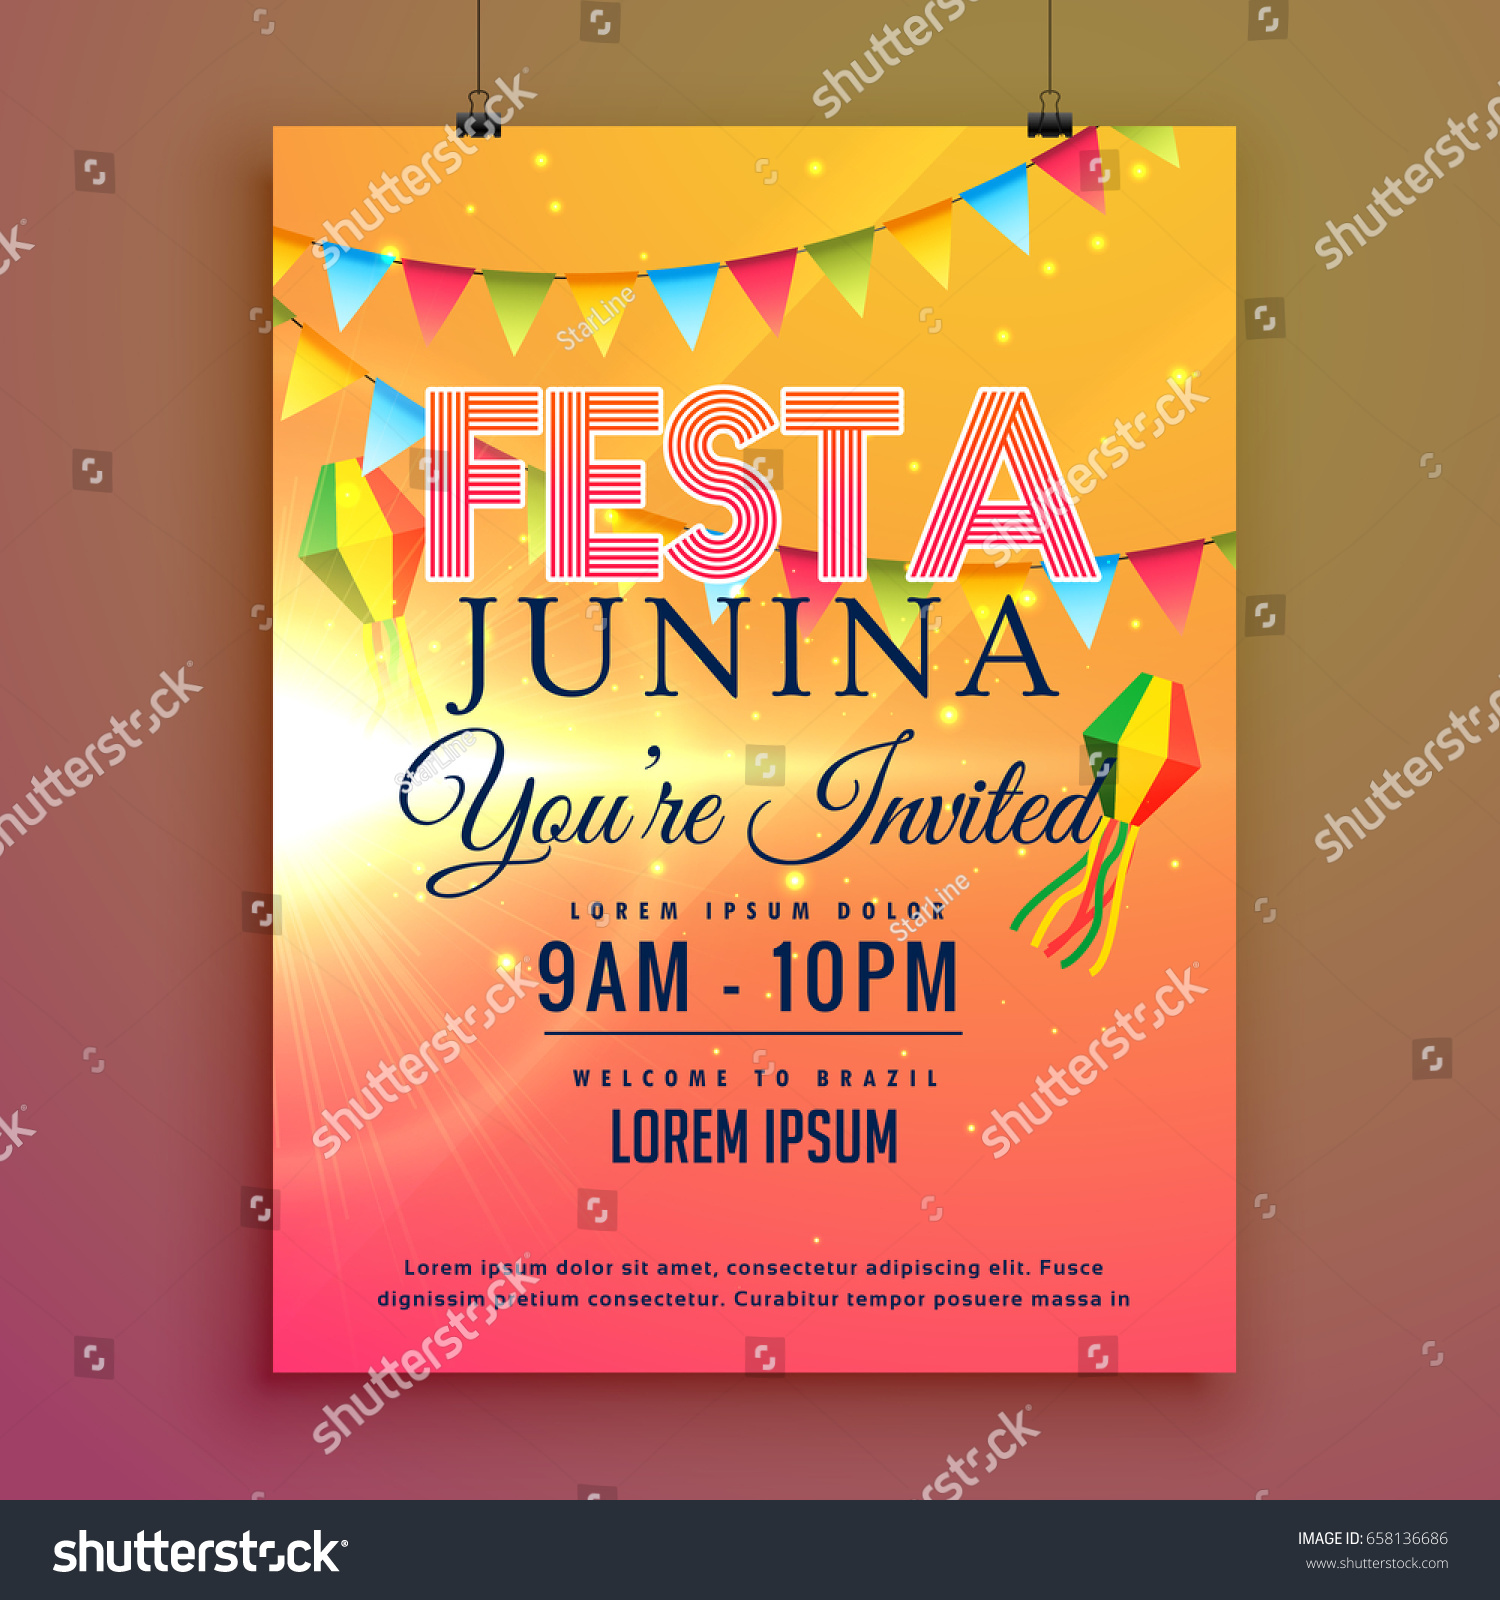 Festa Junina Party Invitation Flyer Design Vector 658136686 – Party Invitation Flyer